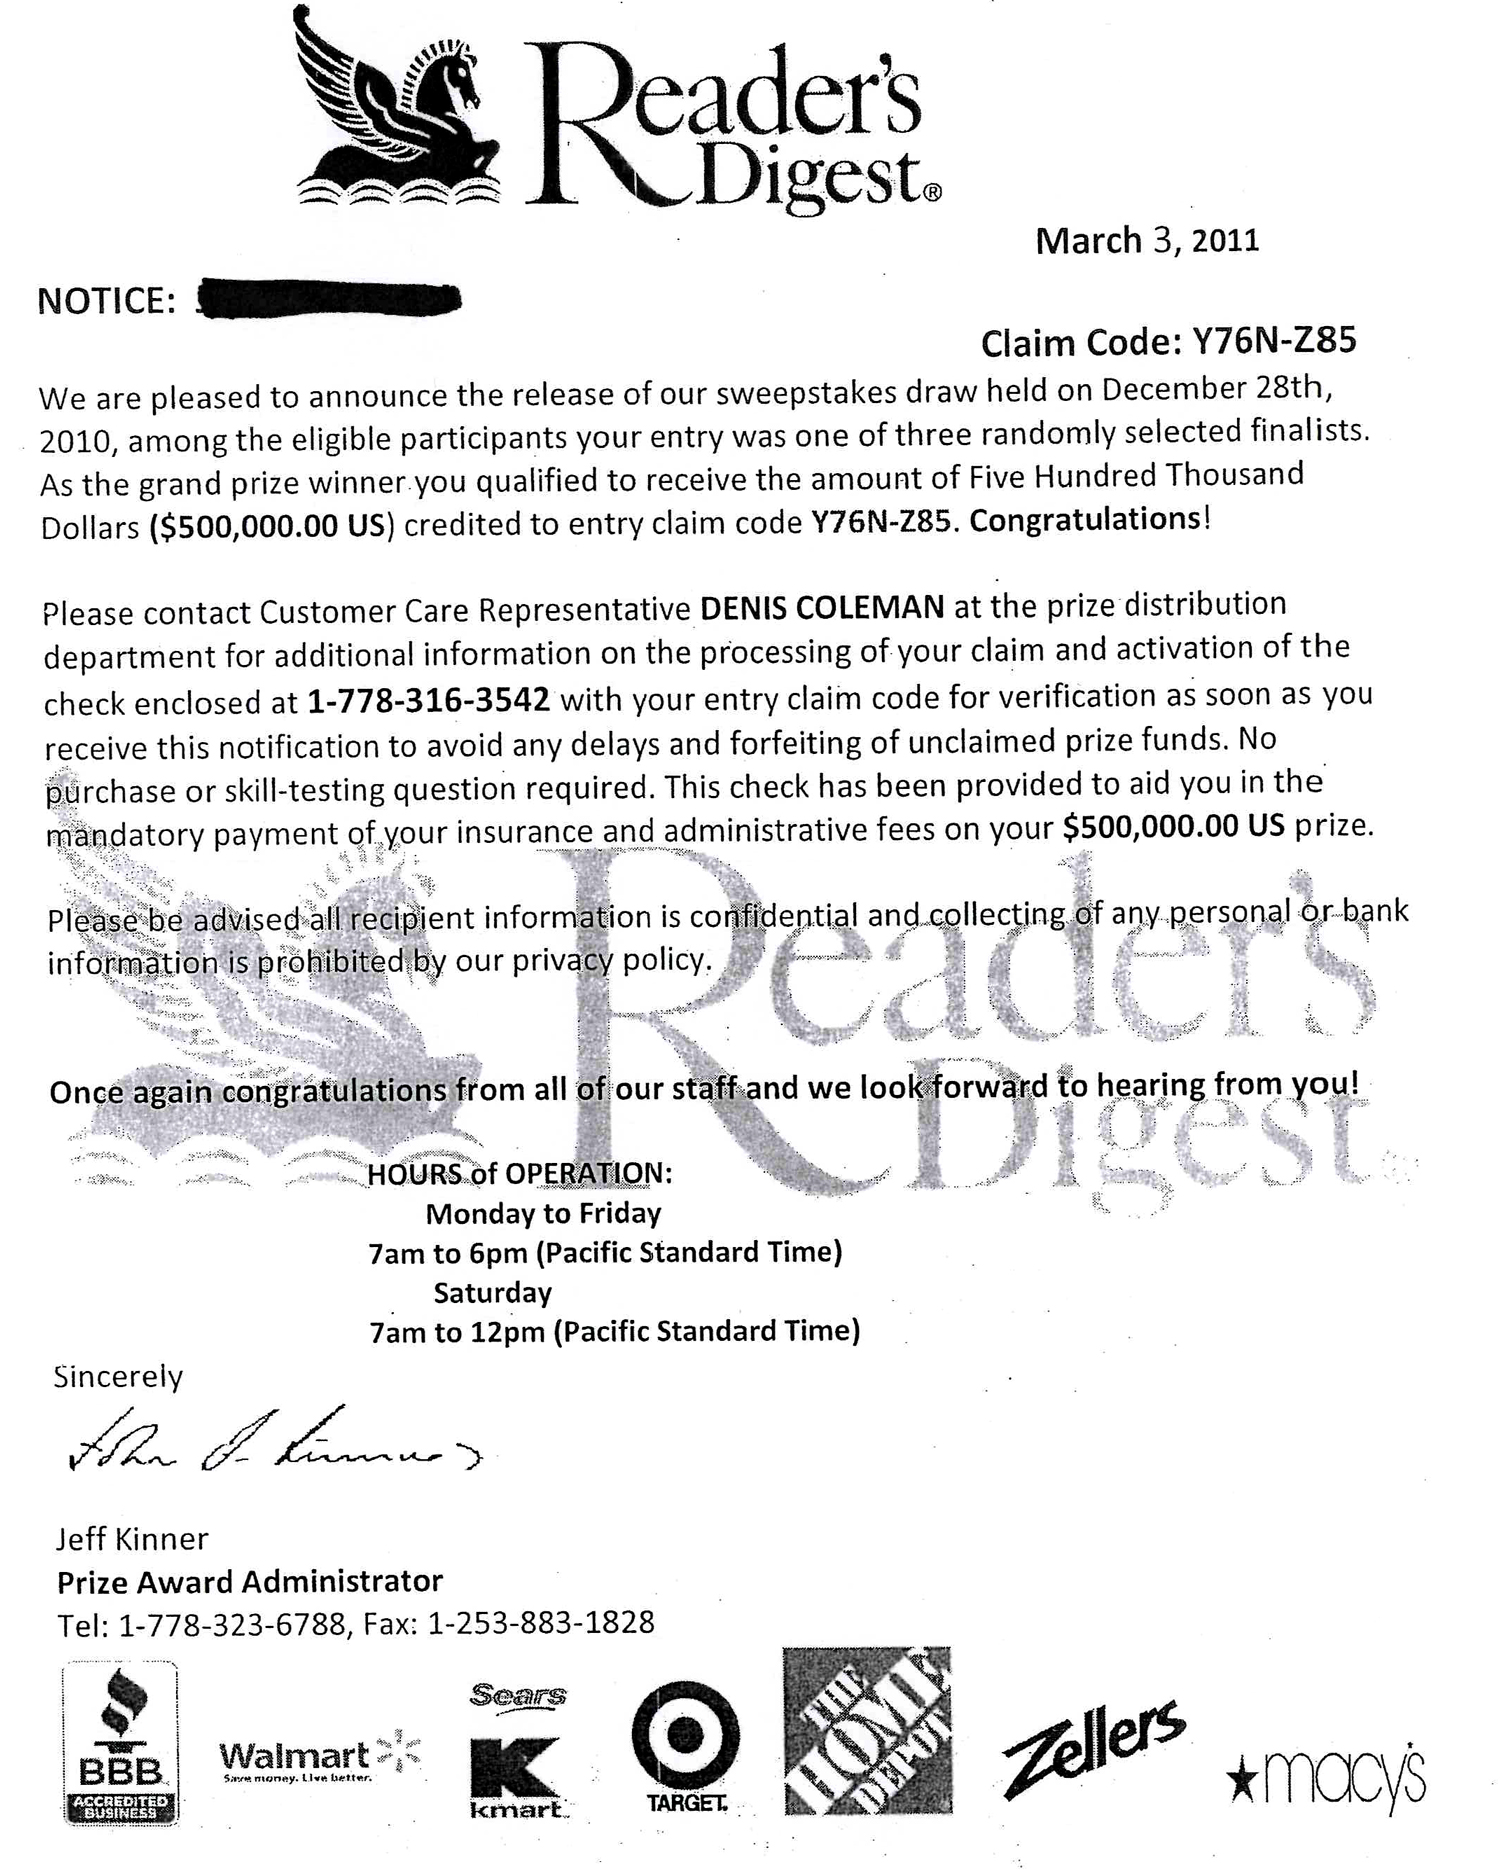 Example of advance fee sweepstakes scam.